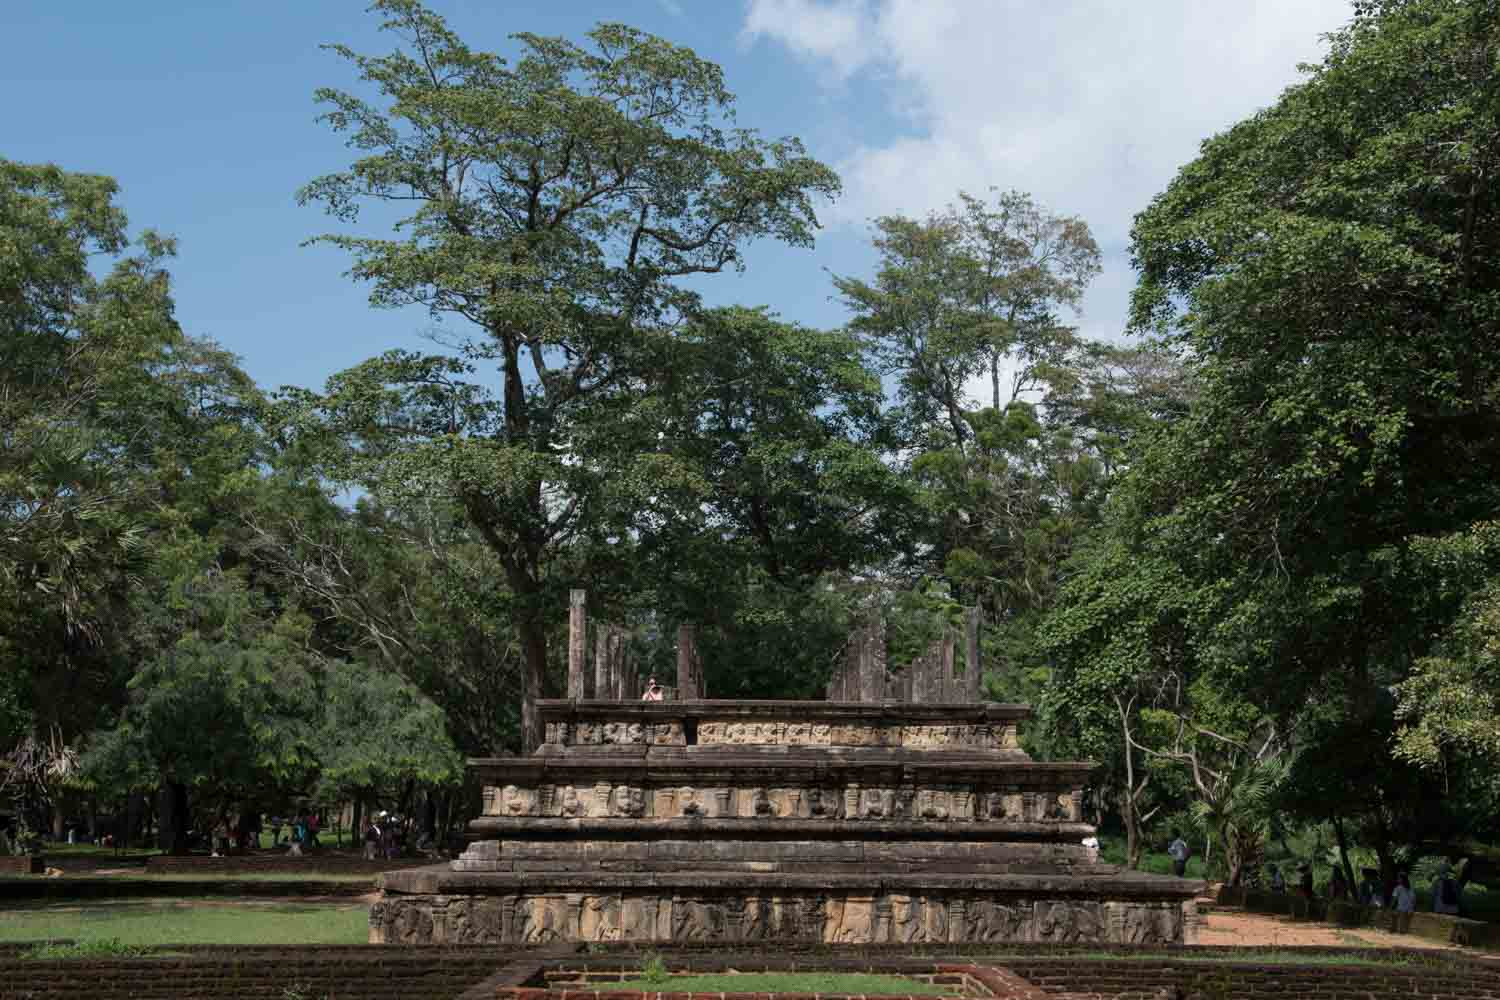 Royal Court-King Parakramabahu, Polonnaruwa, Sri Lanka